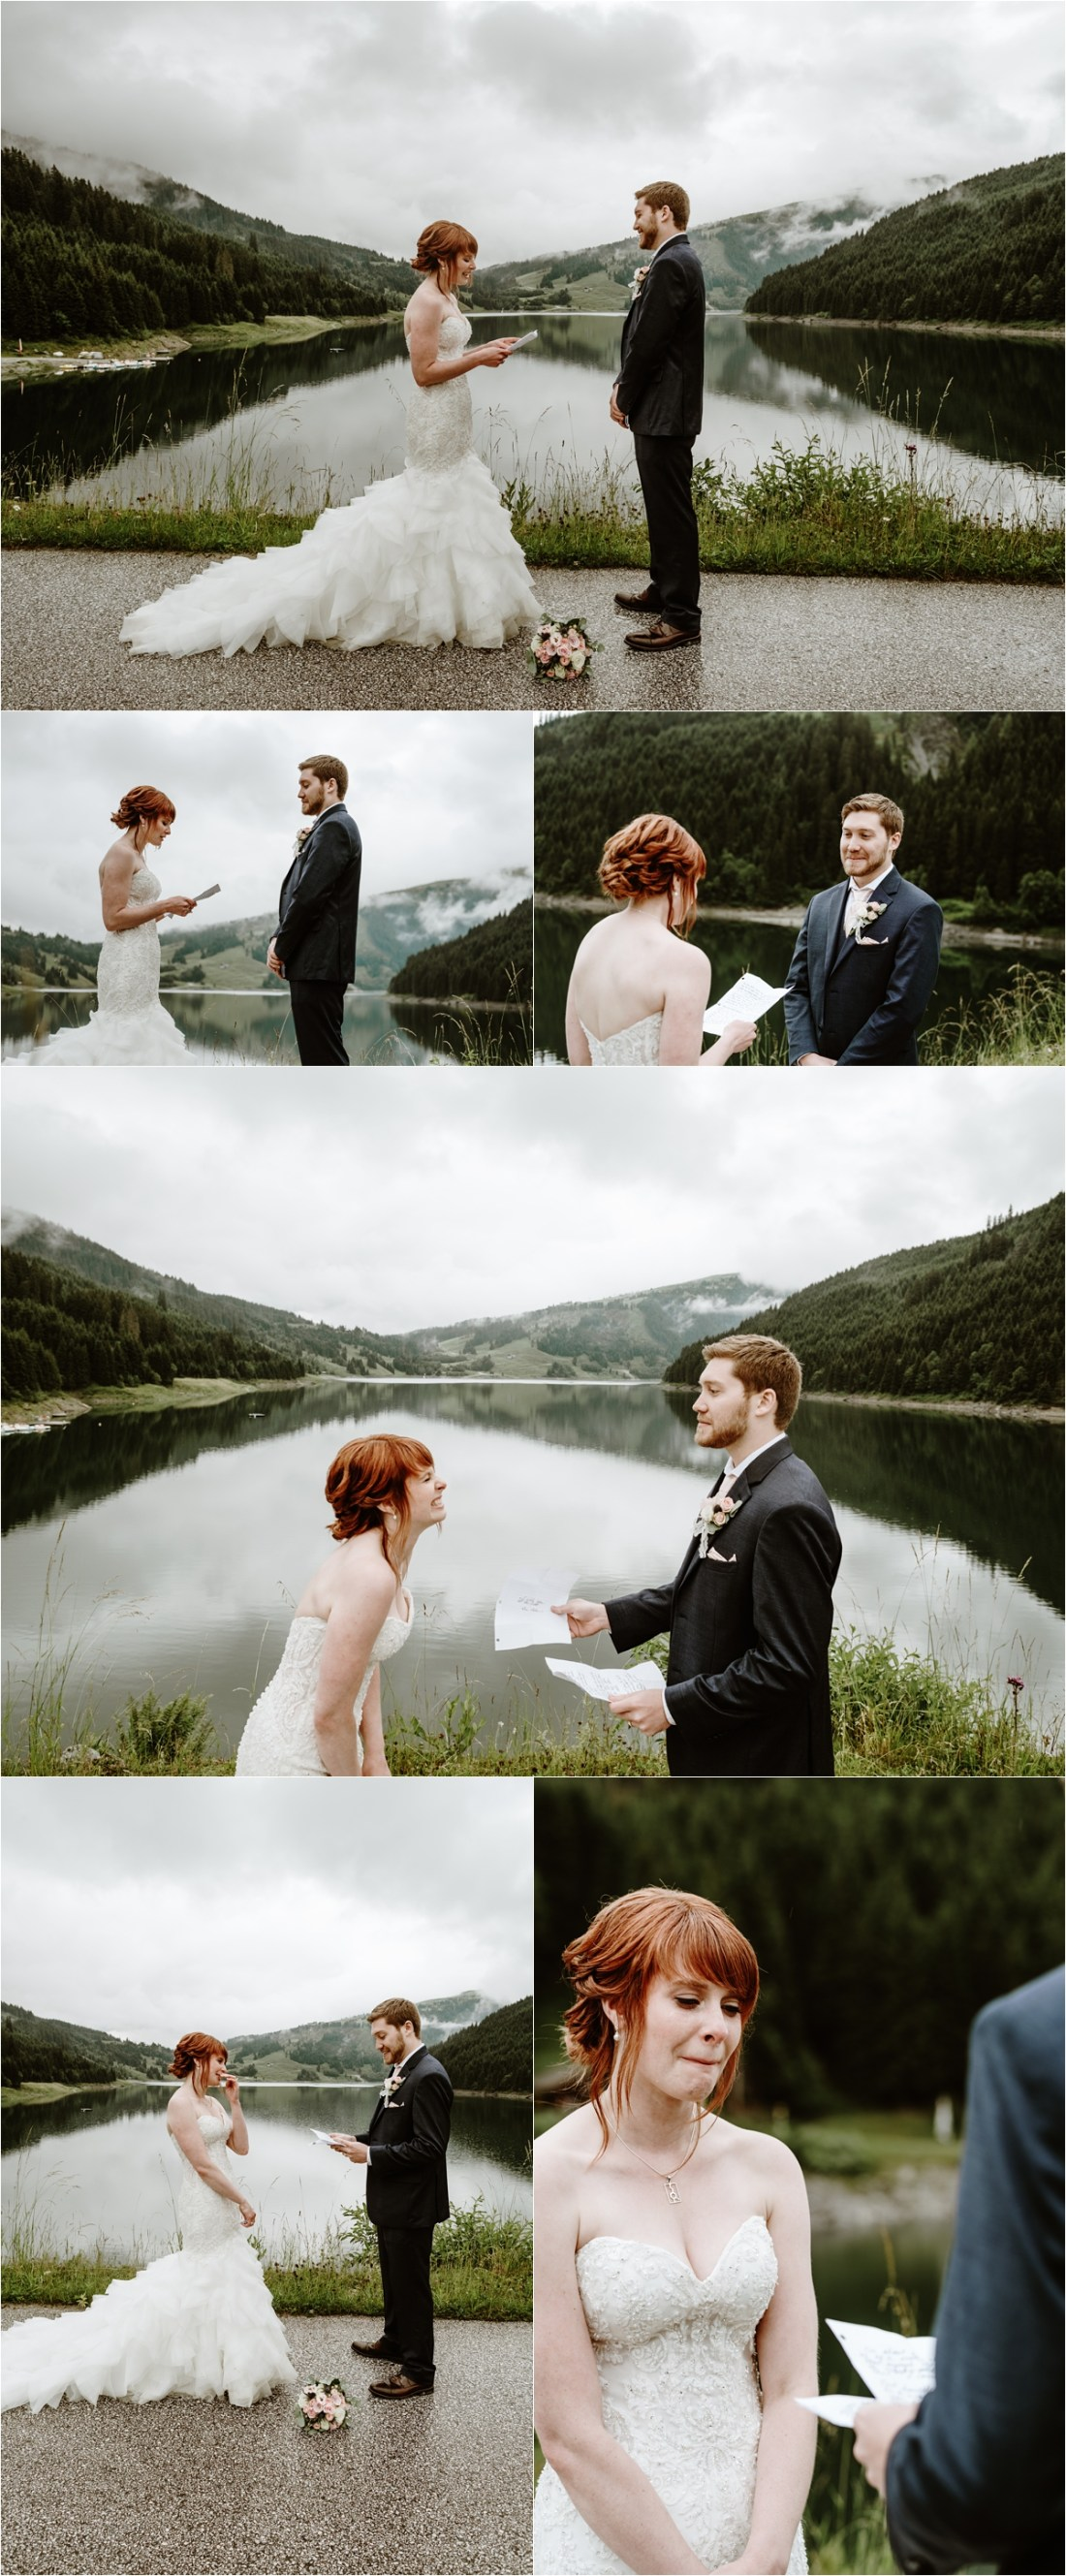 Emma & Adam read their wedding vows to one another in the Austrian Alps in Gerlos. Photos by Wild Connections Photography